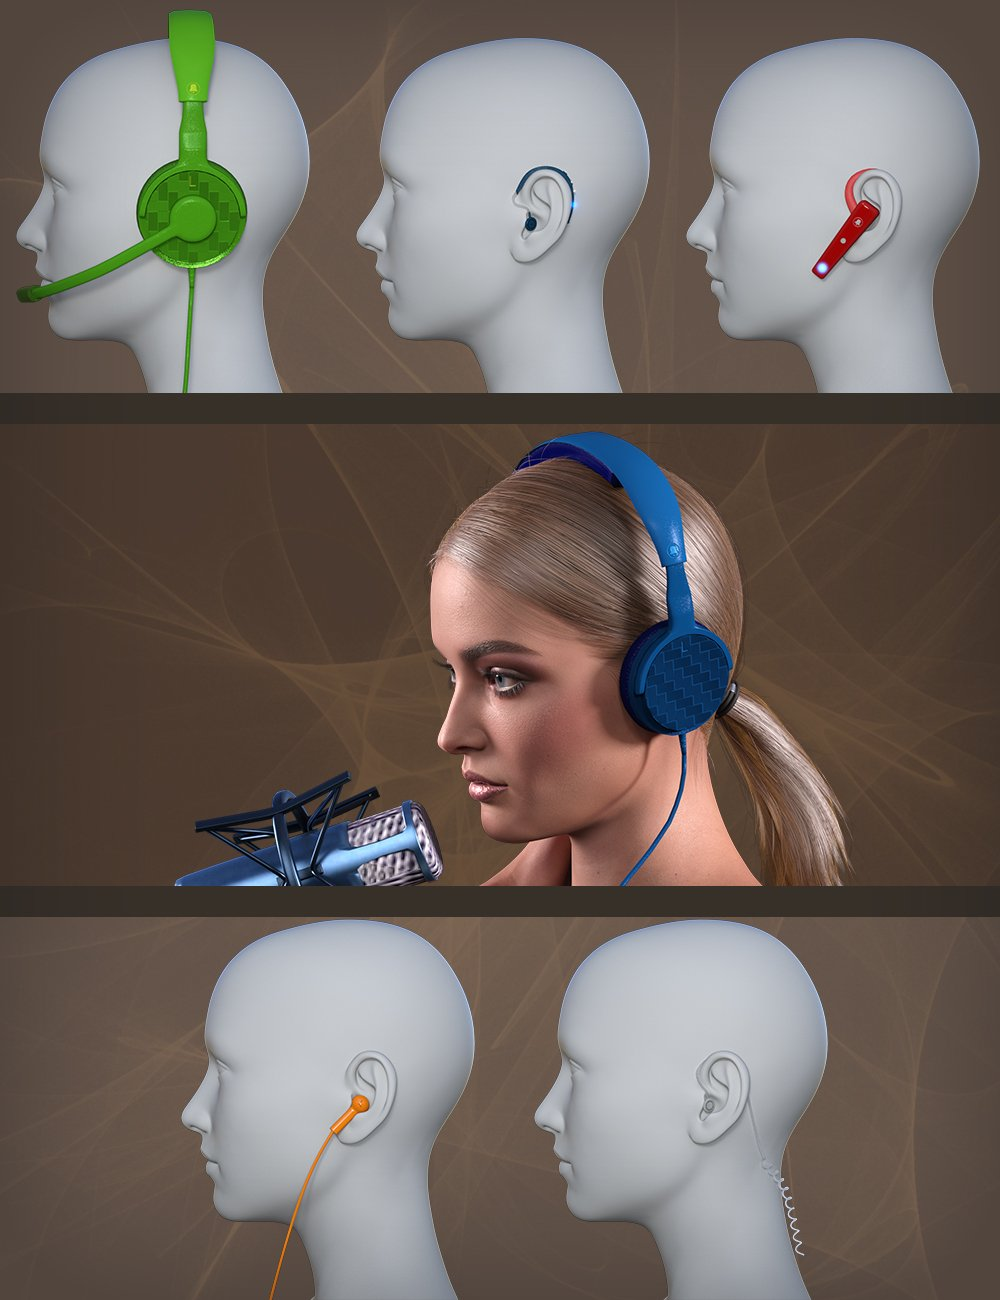 Headset for Genesis 8 by: MikeD, 3D Models by Daz 3D